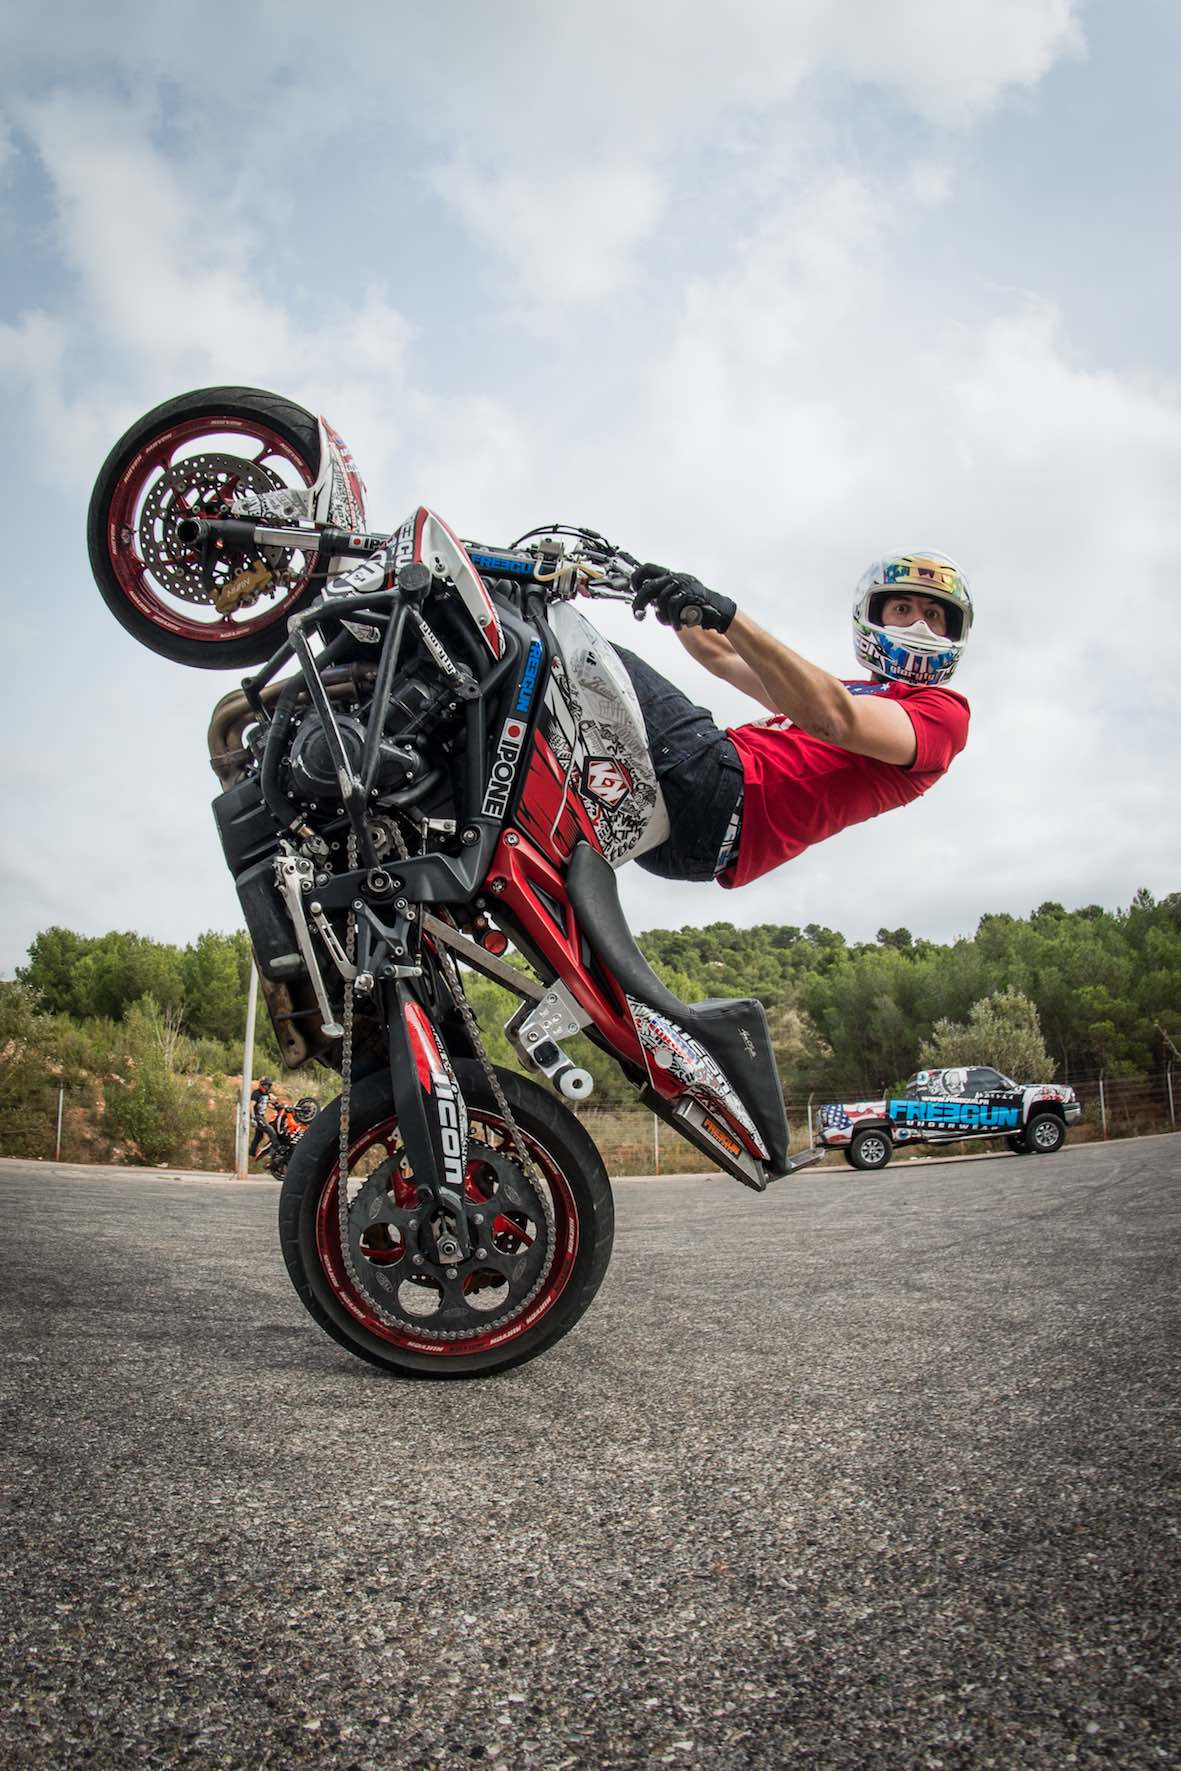 2018 SA Bike Fest visitors can expect to see explosive freestyle performances per day from international Stunt & Wheelie Champion, Julien Welsch.